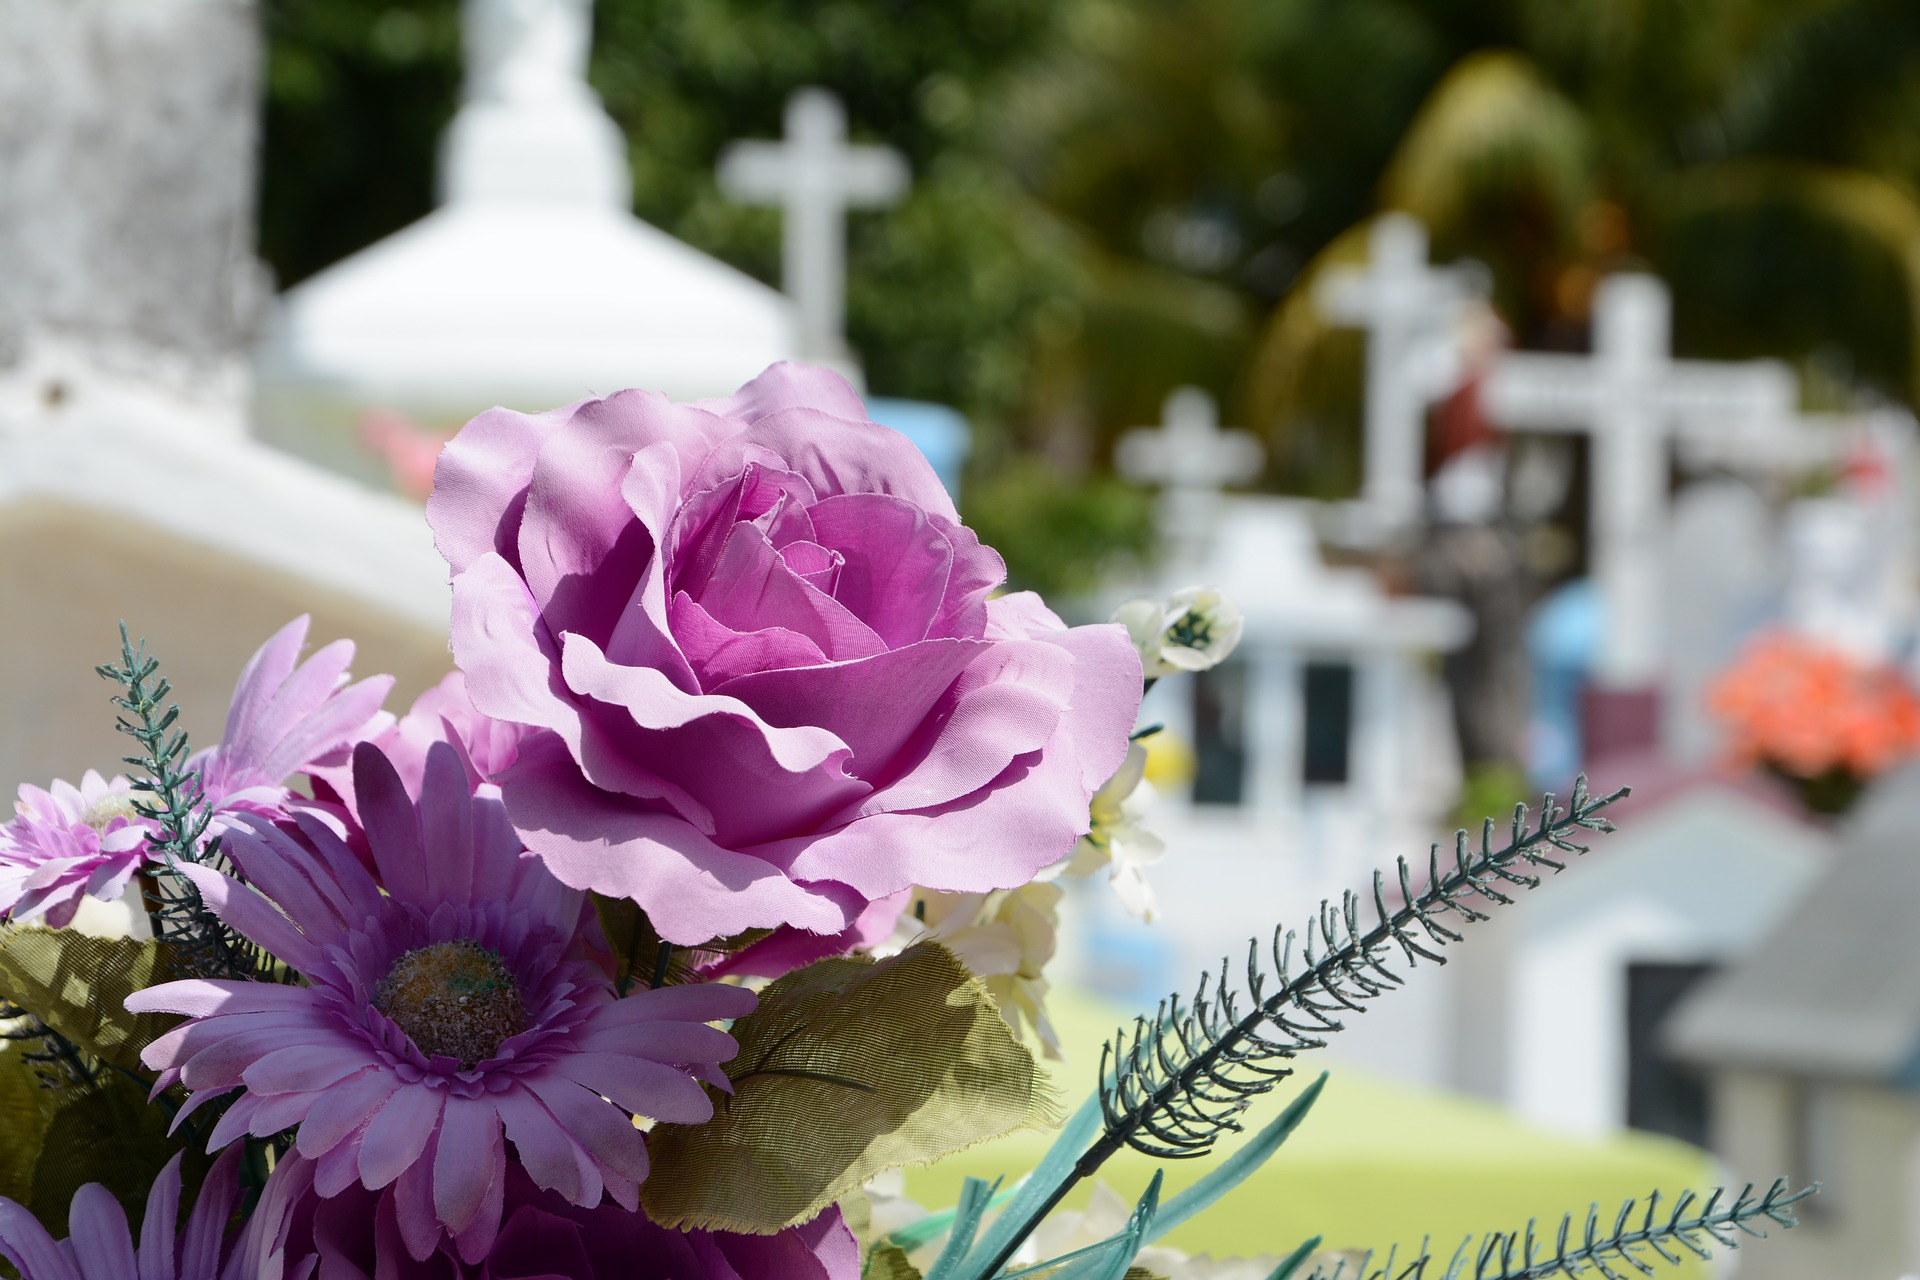 Local Funeral Homes Operate Under New Guidelines to Prevent Spread of COVID-19